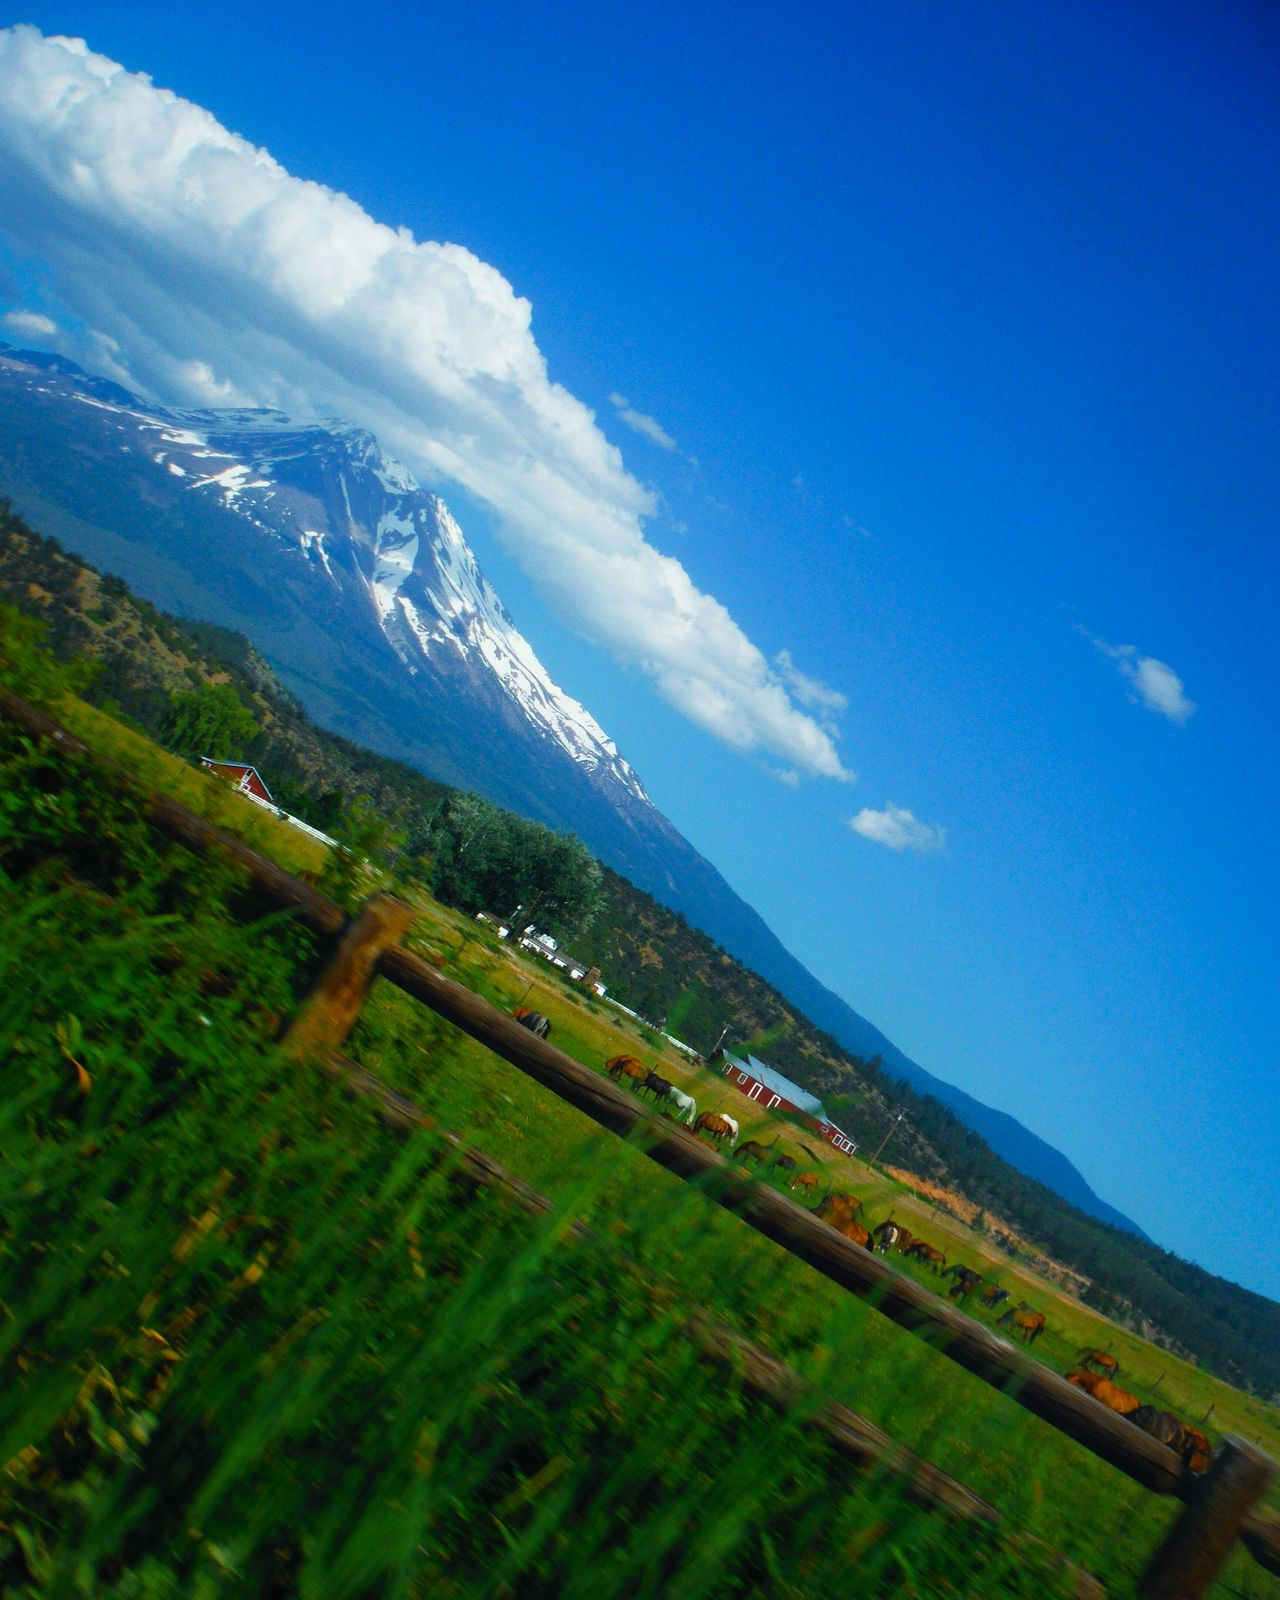 Who says landscapes have to be horizontal? Tilted Different Perspective Mt. Shasta Pasture Pasture Fence Cattle Mountain And Sky Mountain And Clouds Cloud Porn Cloud Plume Green And Blue Countryside In The Country Farm Life Sunny Day Mt Shasta Mount Shasta Mount Shasta, California Mount Shasta, CA Eyeem California Perspective Photography Different View Different Angle Slanted Diagonal Perspective